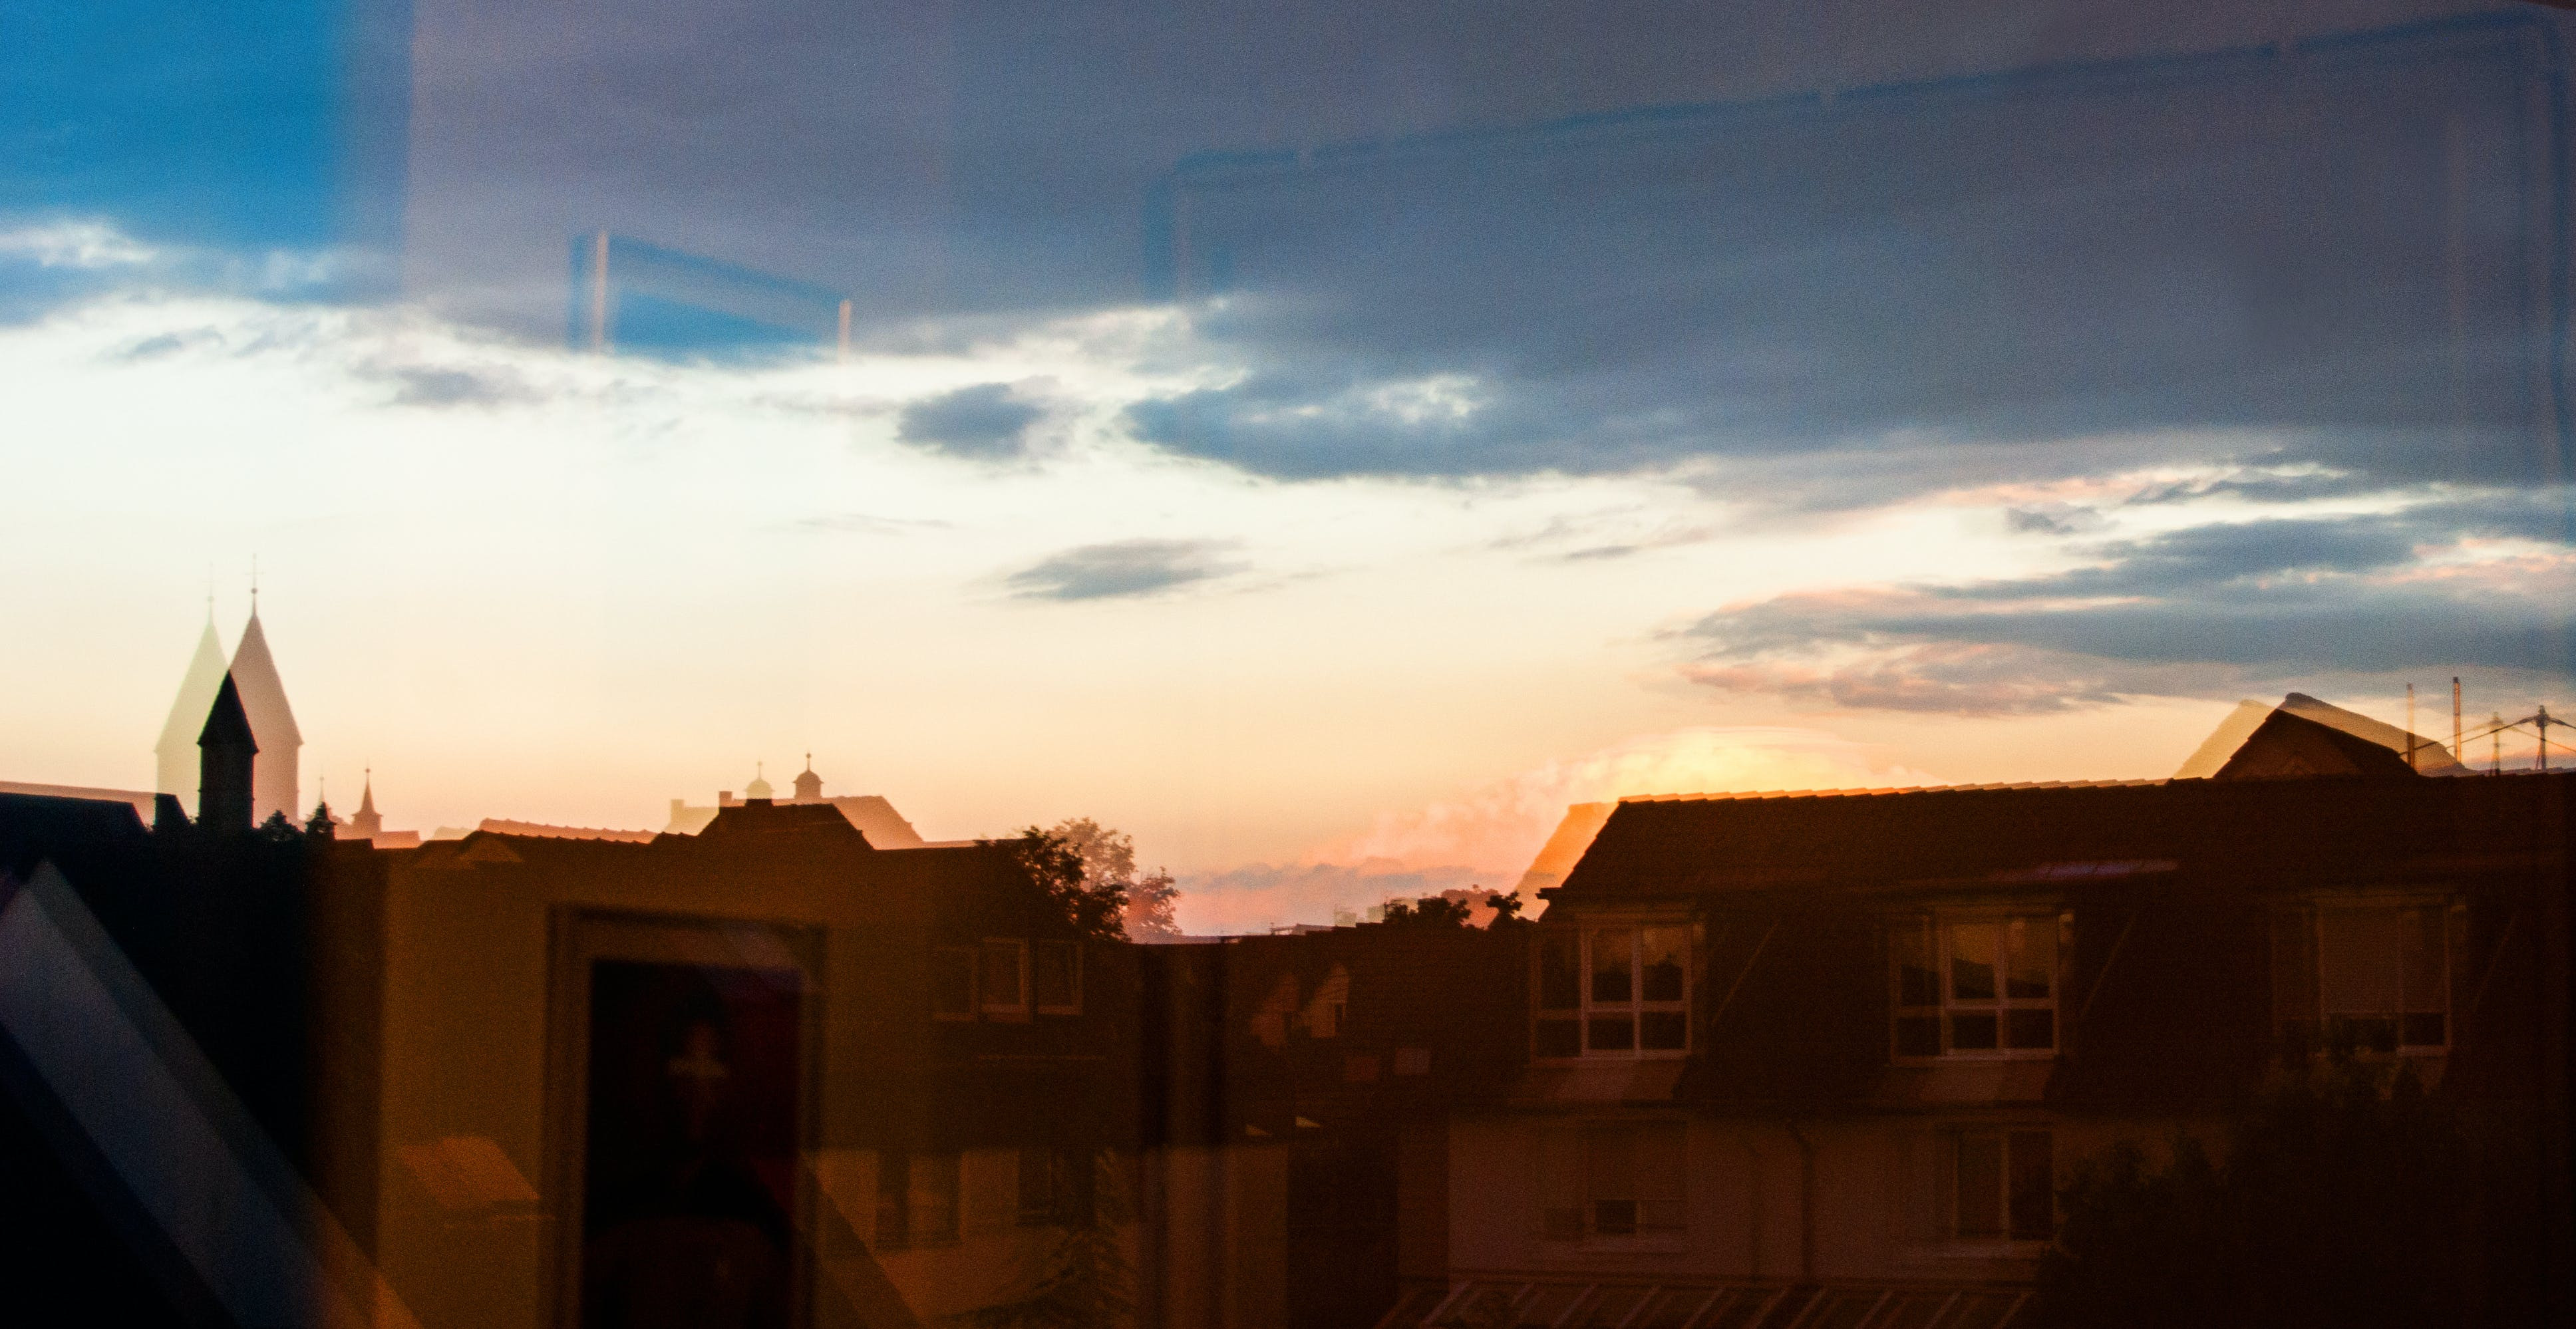 Free stock photo of sunset, view, theme reflections